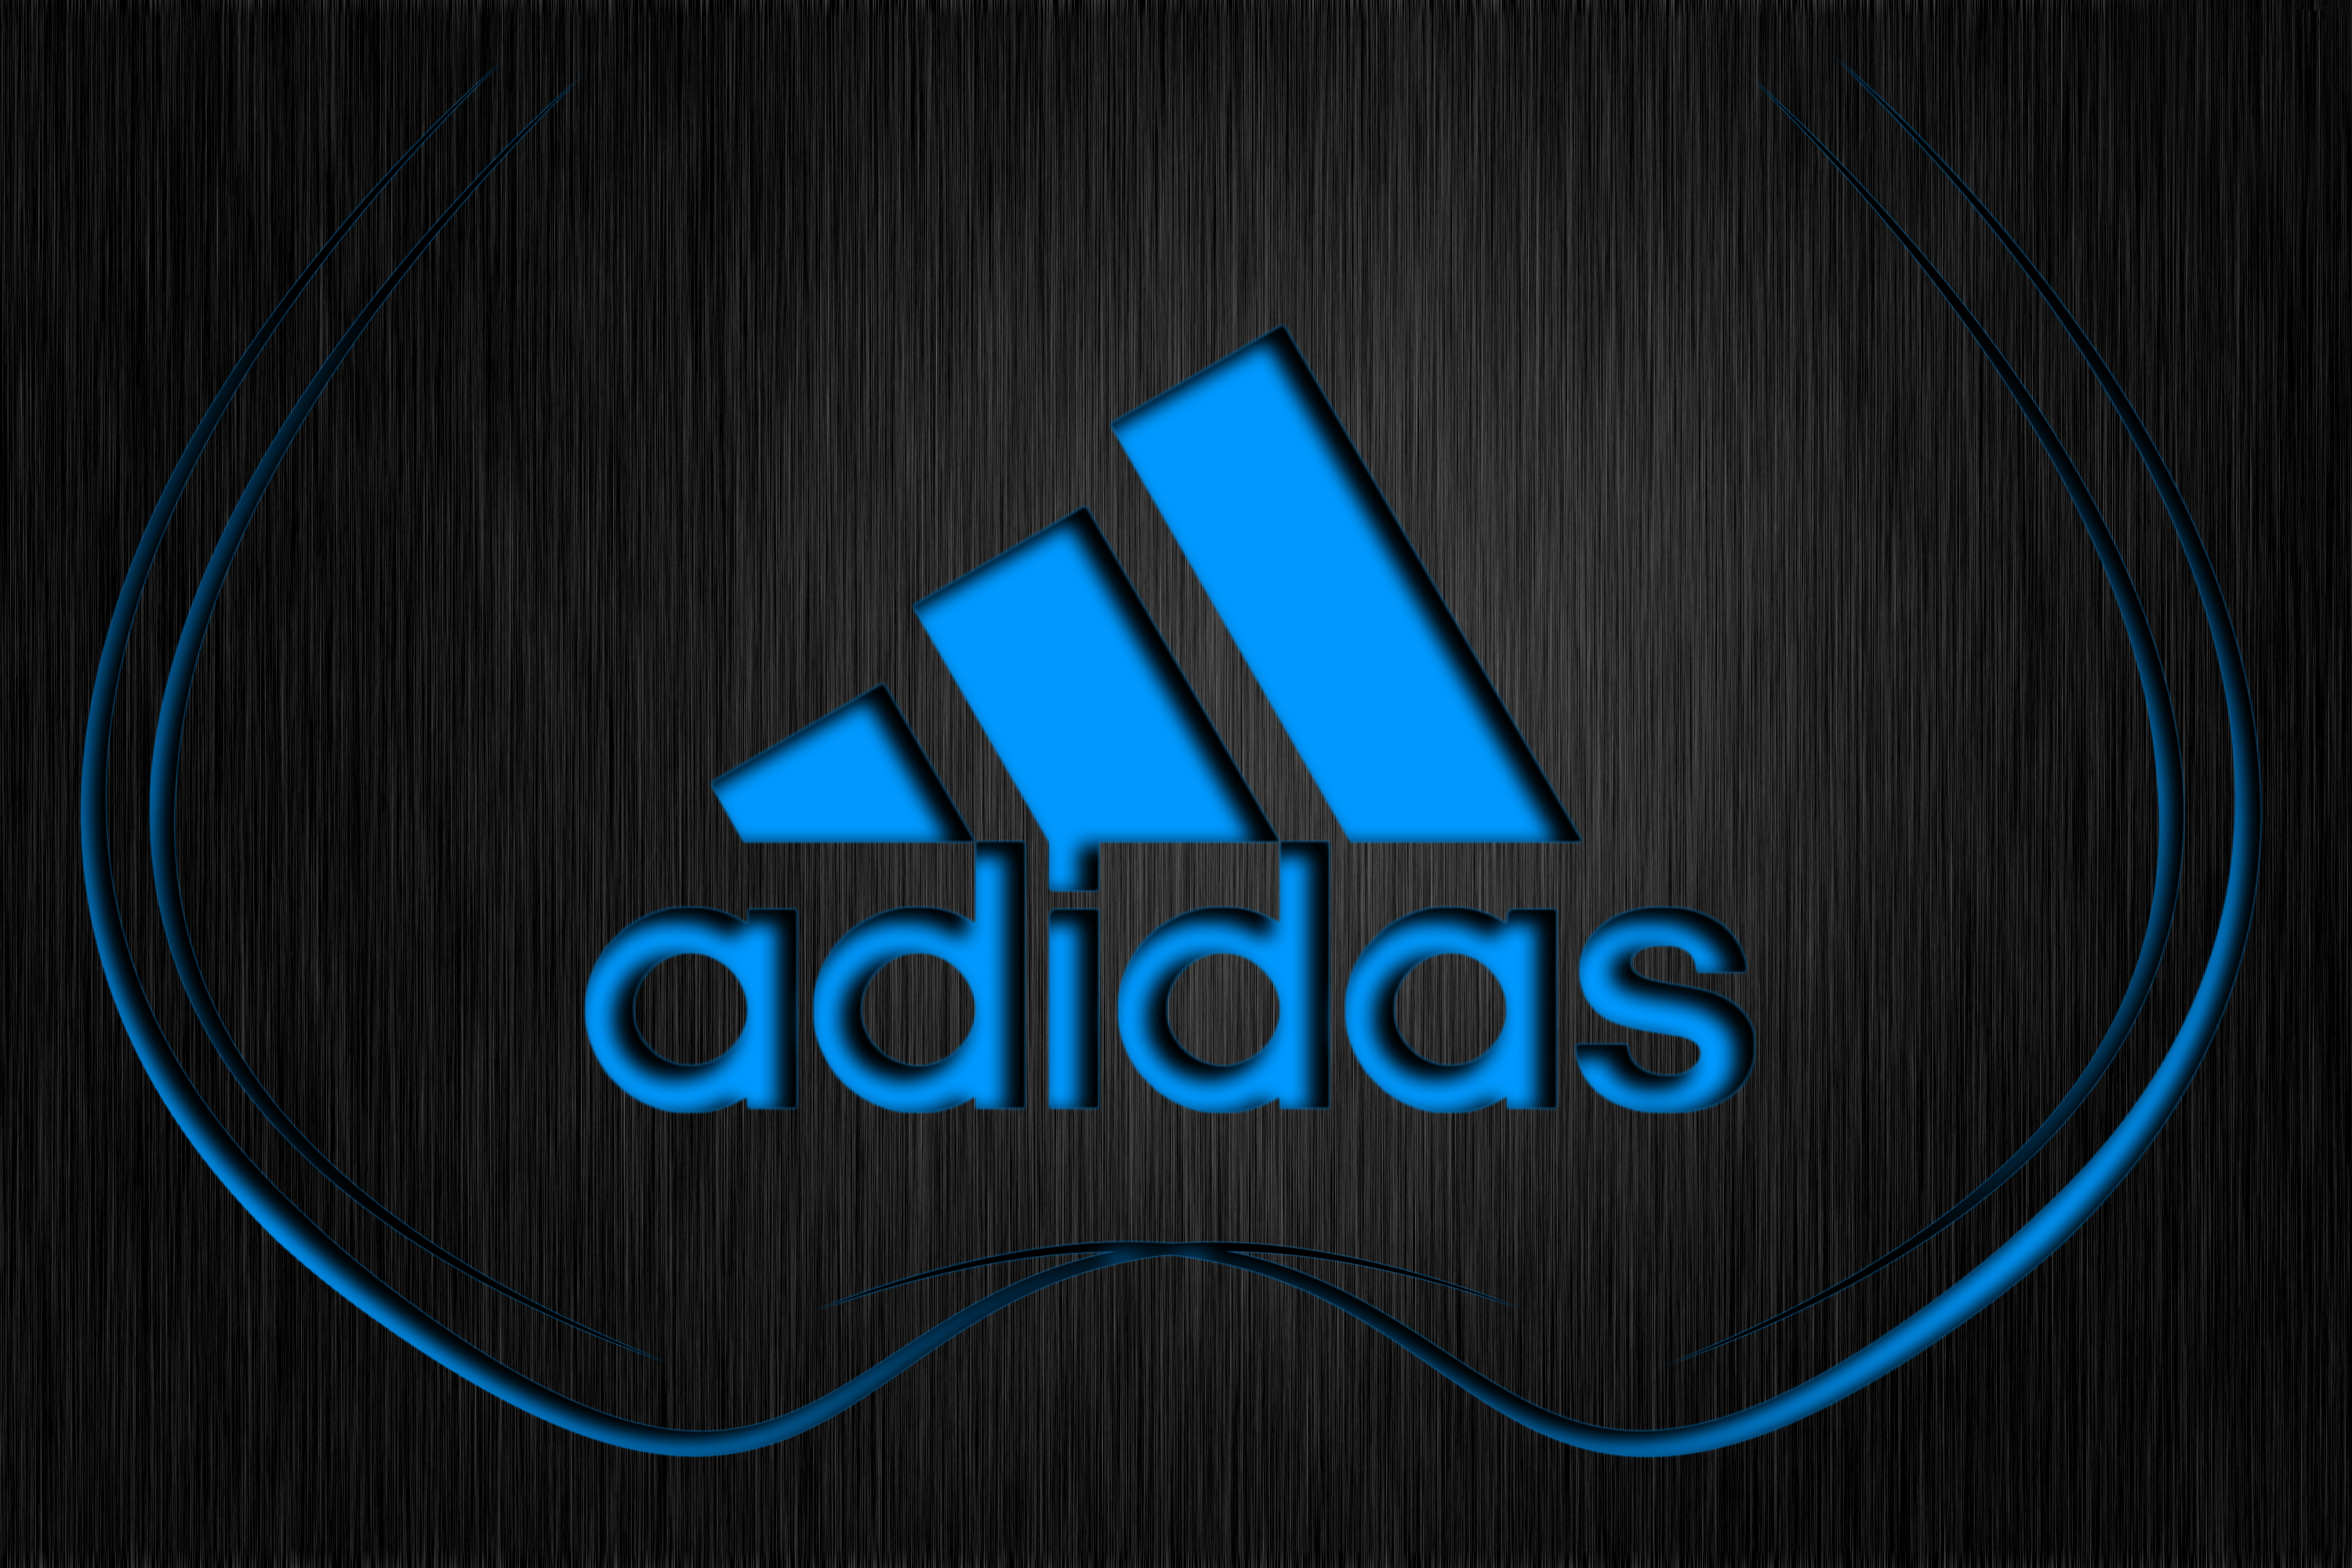 adidas wallpaper hd imagebankbiz